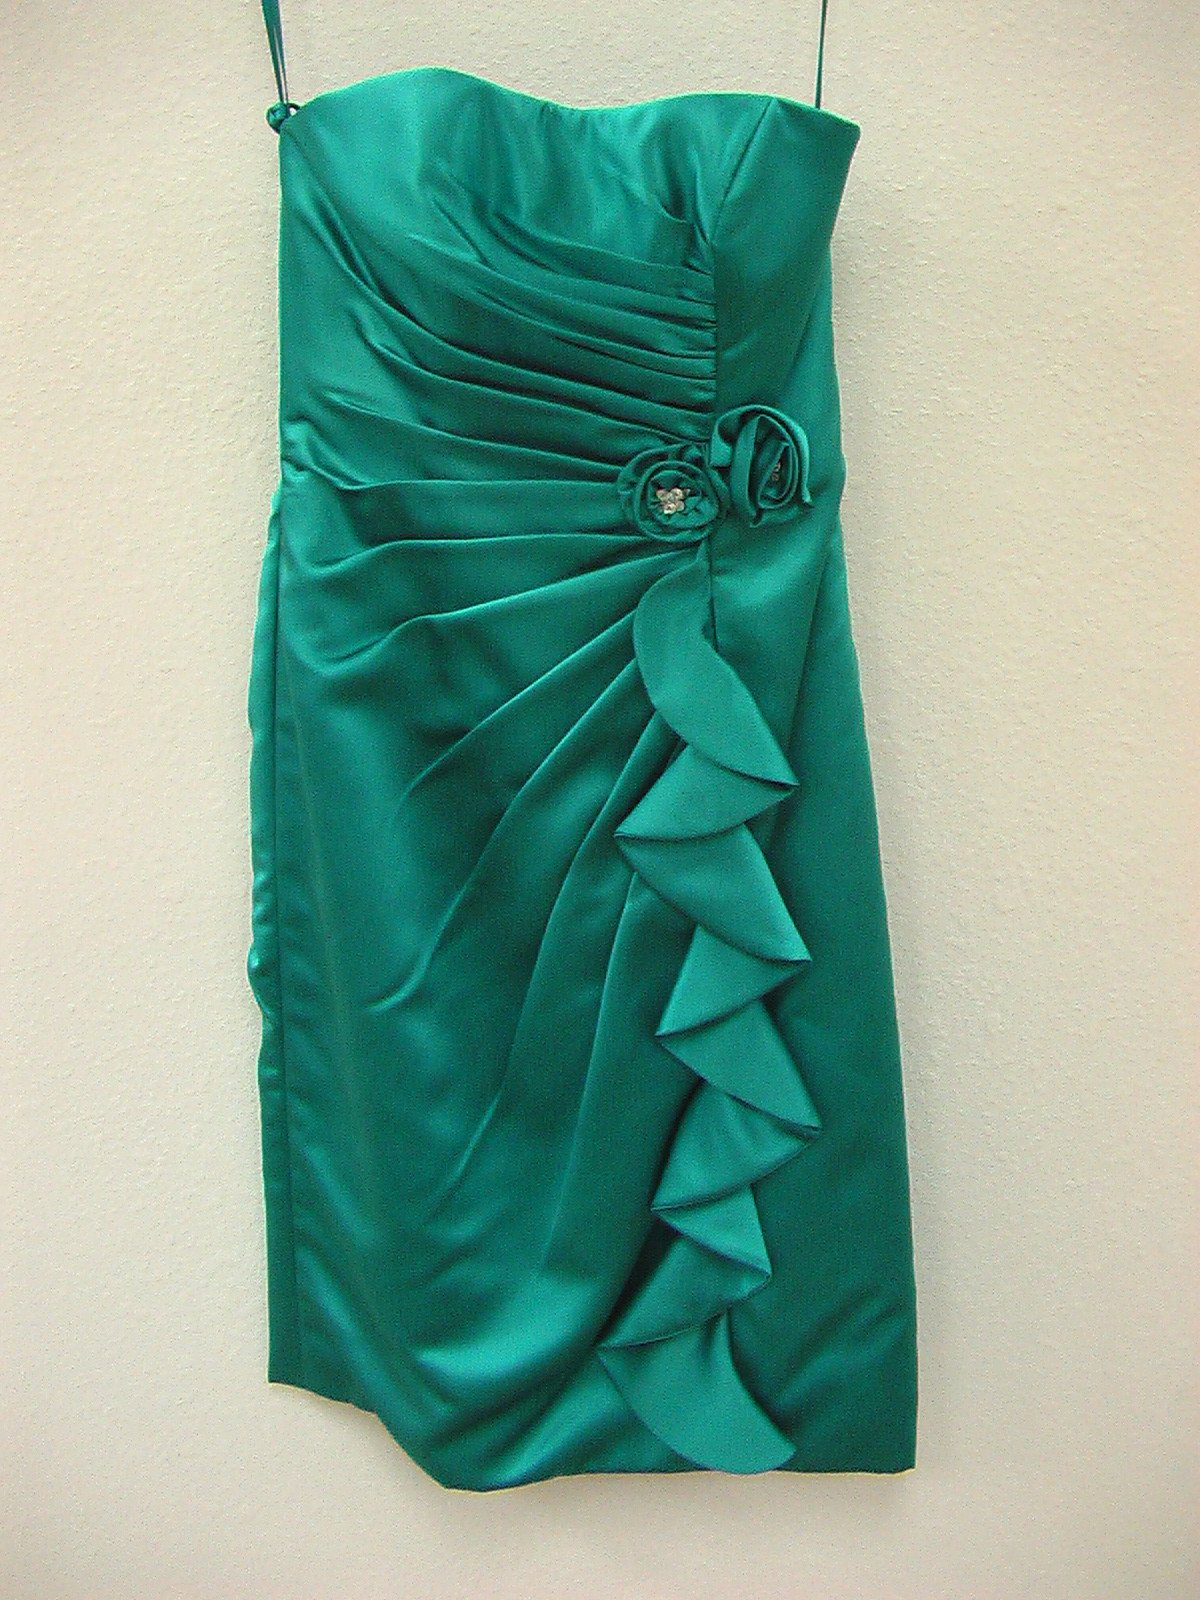 Allure 1268 Teal Size 8 In Stock Bridesmaid Dress - Tom's Bridal